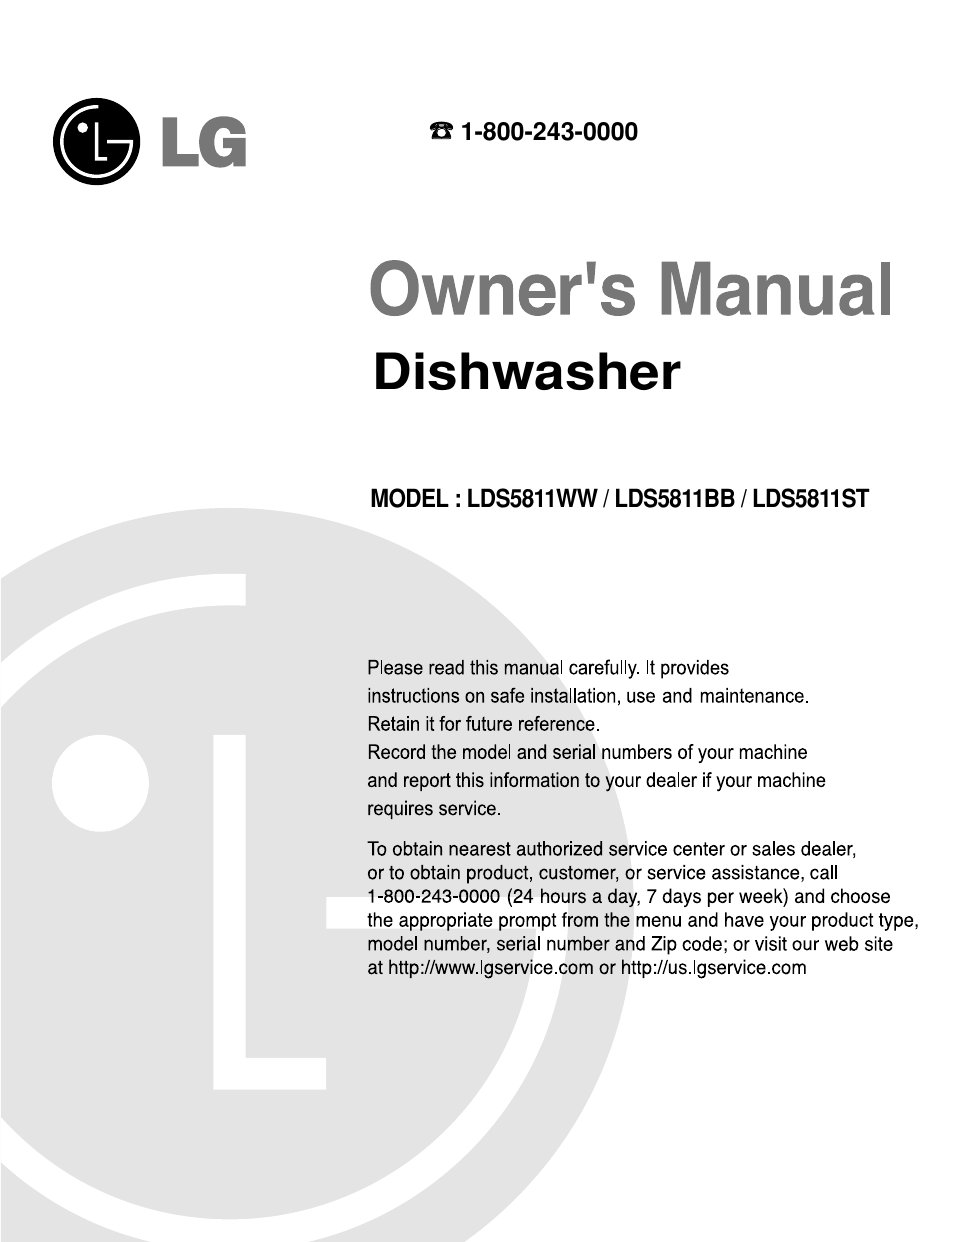 lg lds5811st user manual 44 pages also for lds5811ww lds5811bb rh manualsdir com lg dishwasher lds5811st parts list LG Dishwasher Dw-Ts610 User Manual